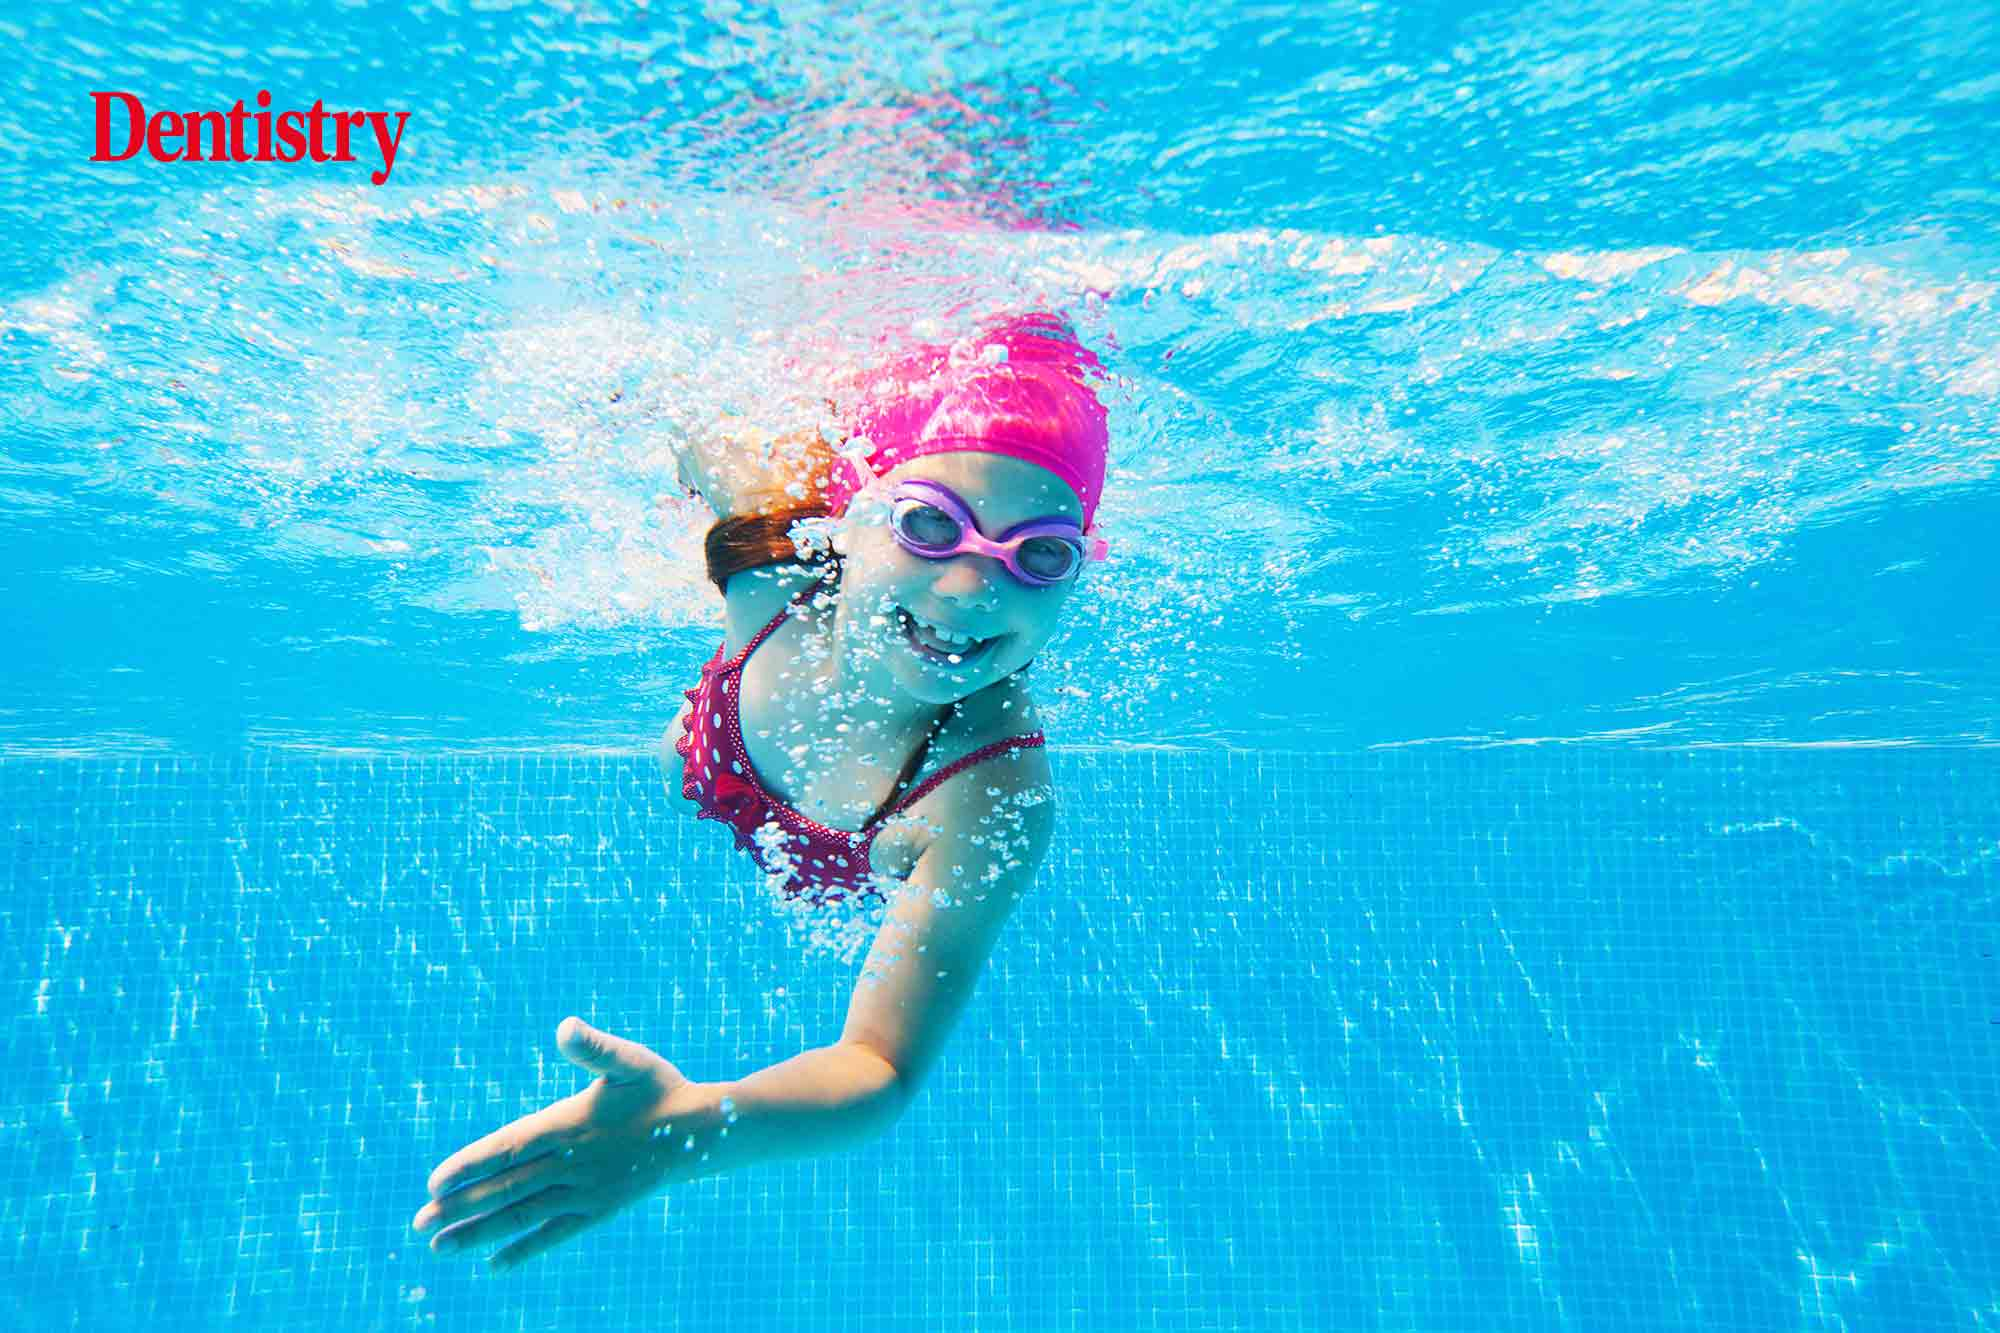 Children who swim competitively are six times more likely to have dental staining